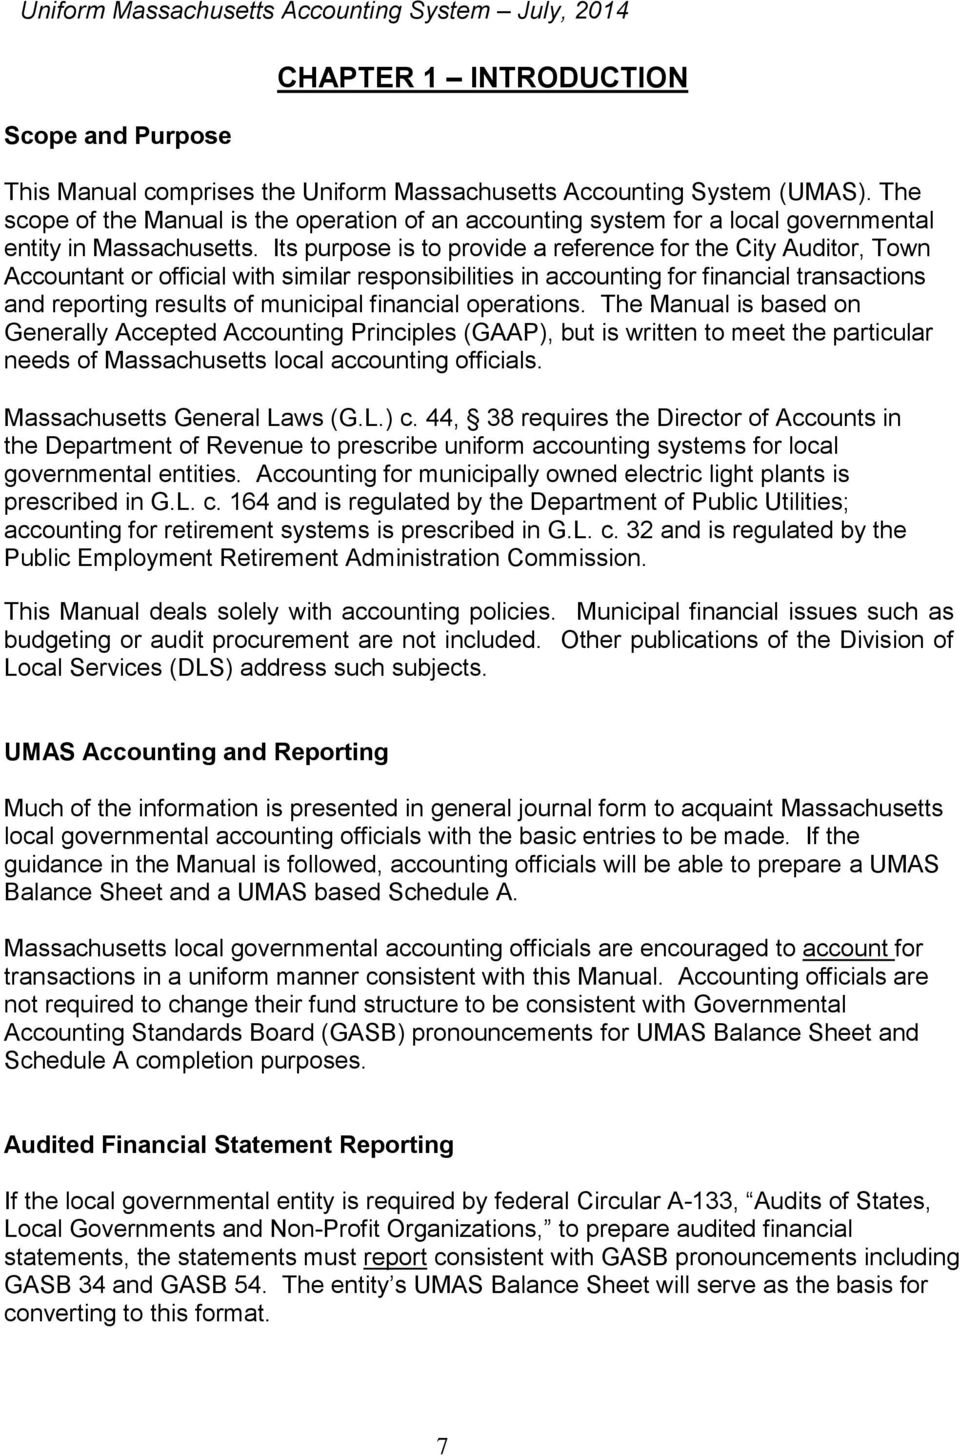 Its purpose is to provide a reference for the City Auditor, Town Accountant or official with similar responsibilities in accounting for financial transactions and reporting results of municipal